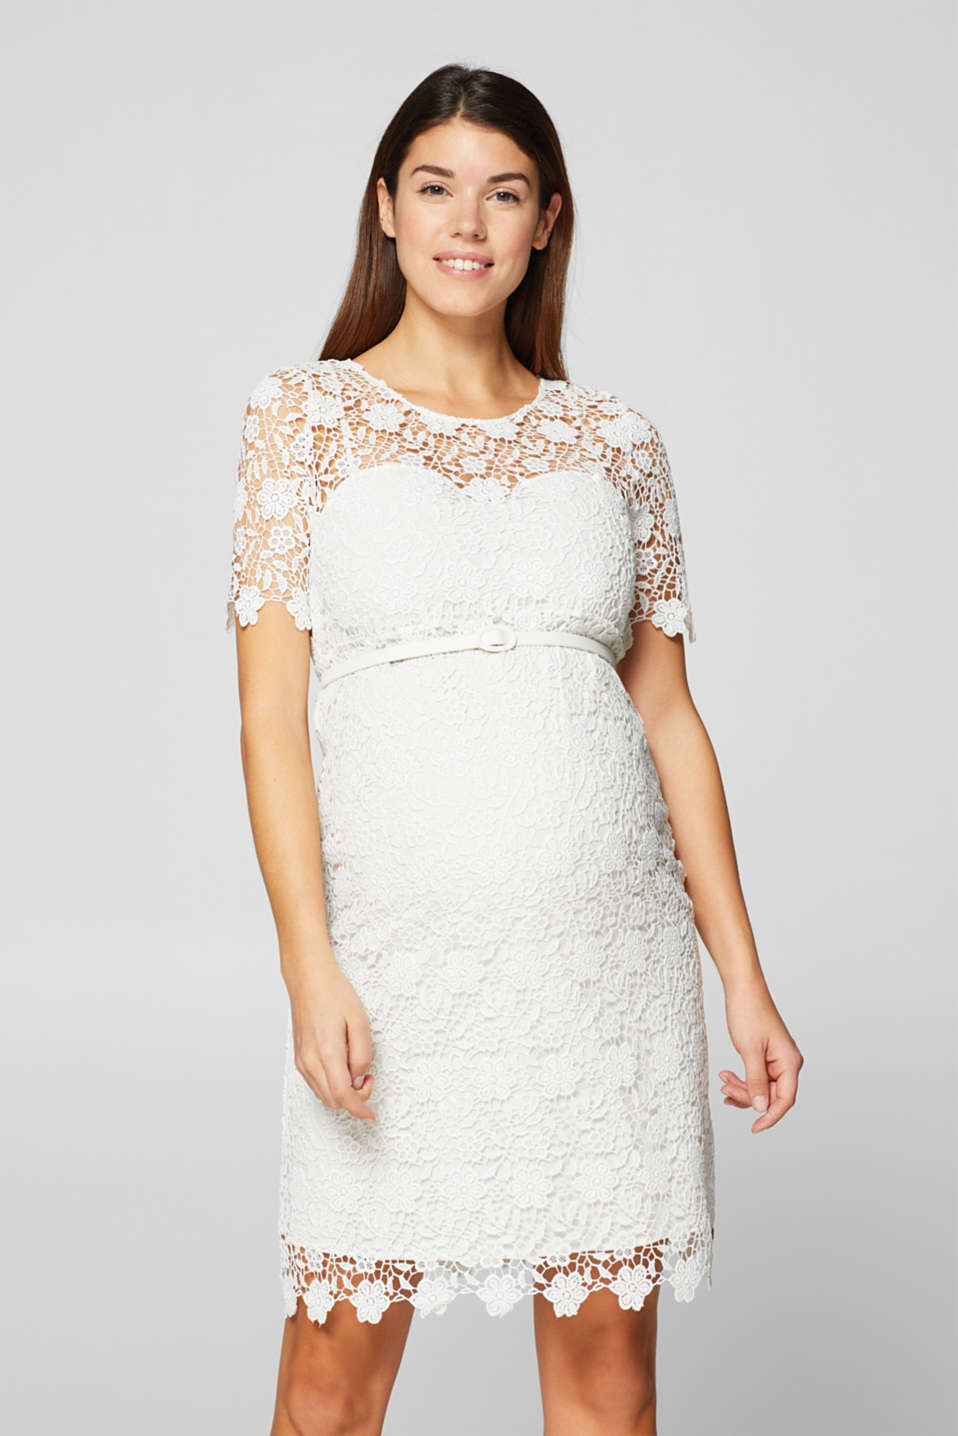 Esprit - Crocheted lace dress with a belt